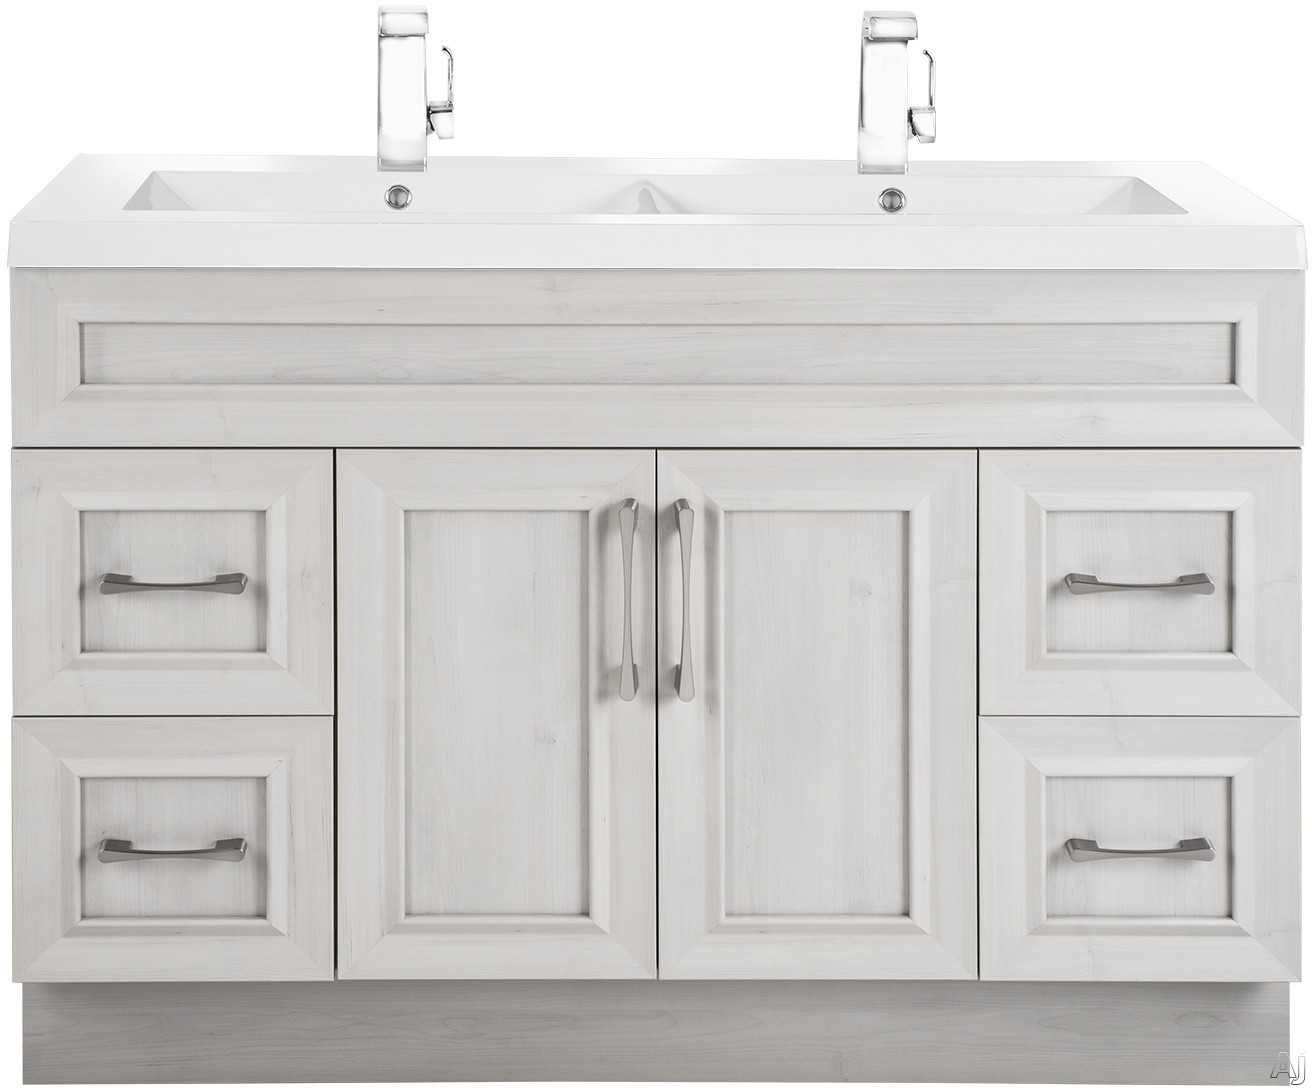 Cutler Kitchen & Bath Classic CCMCTR48DBT 48 Inch Freestanding Double Bowl Vanity with 4 Soft Close Drawers, Countertop and Sink and Handles Included